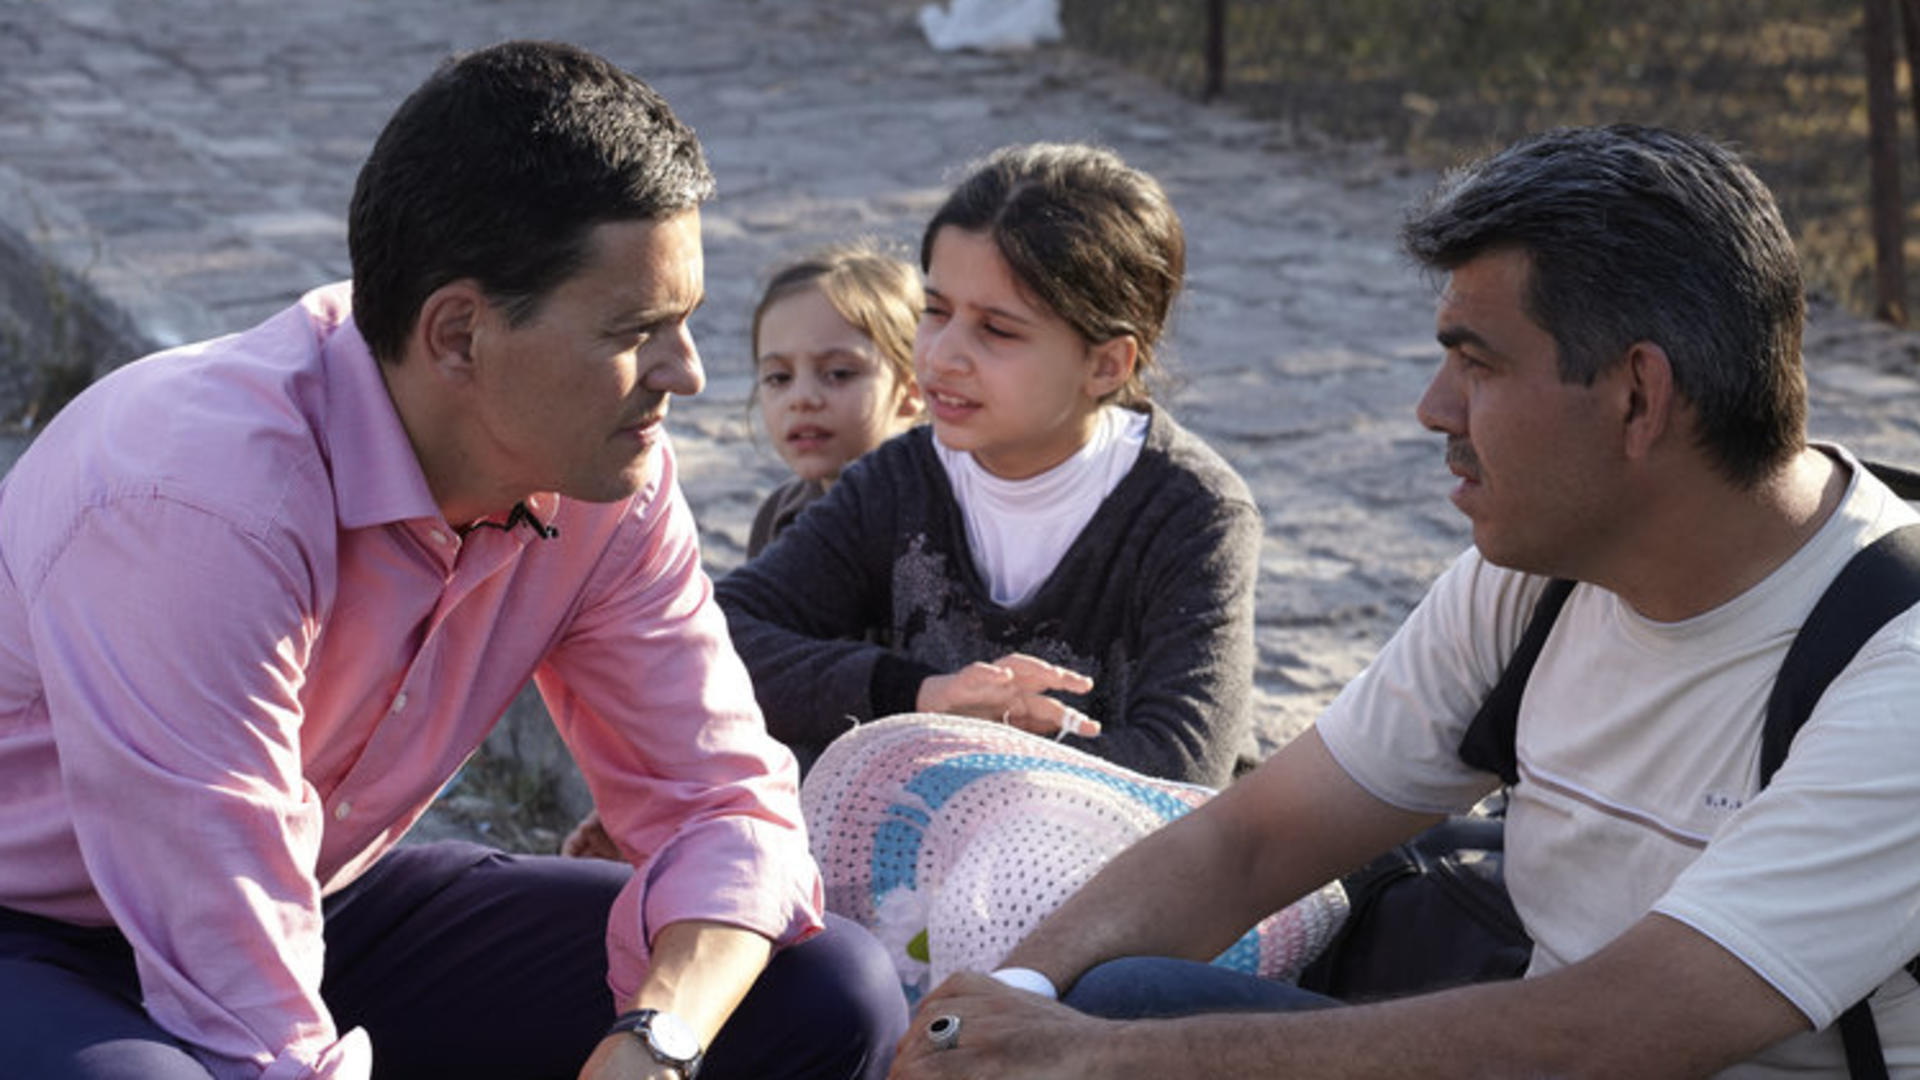 IRC president David Miliband speaks with refugees in Greece